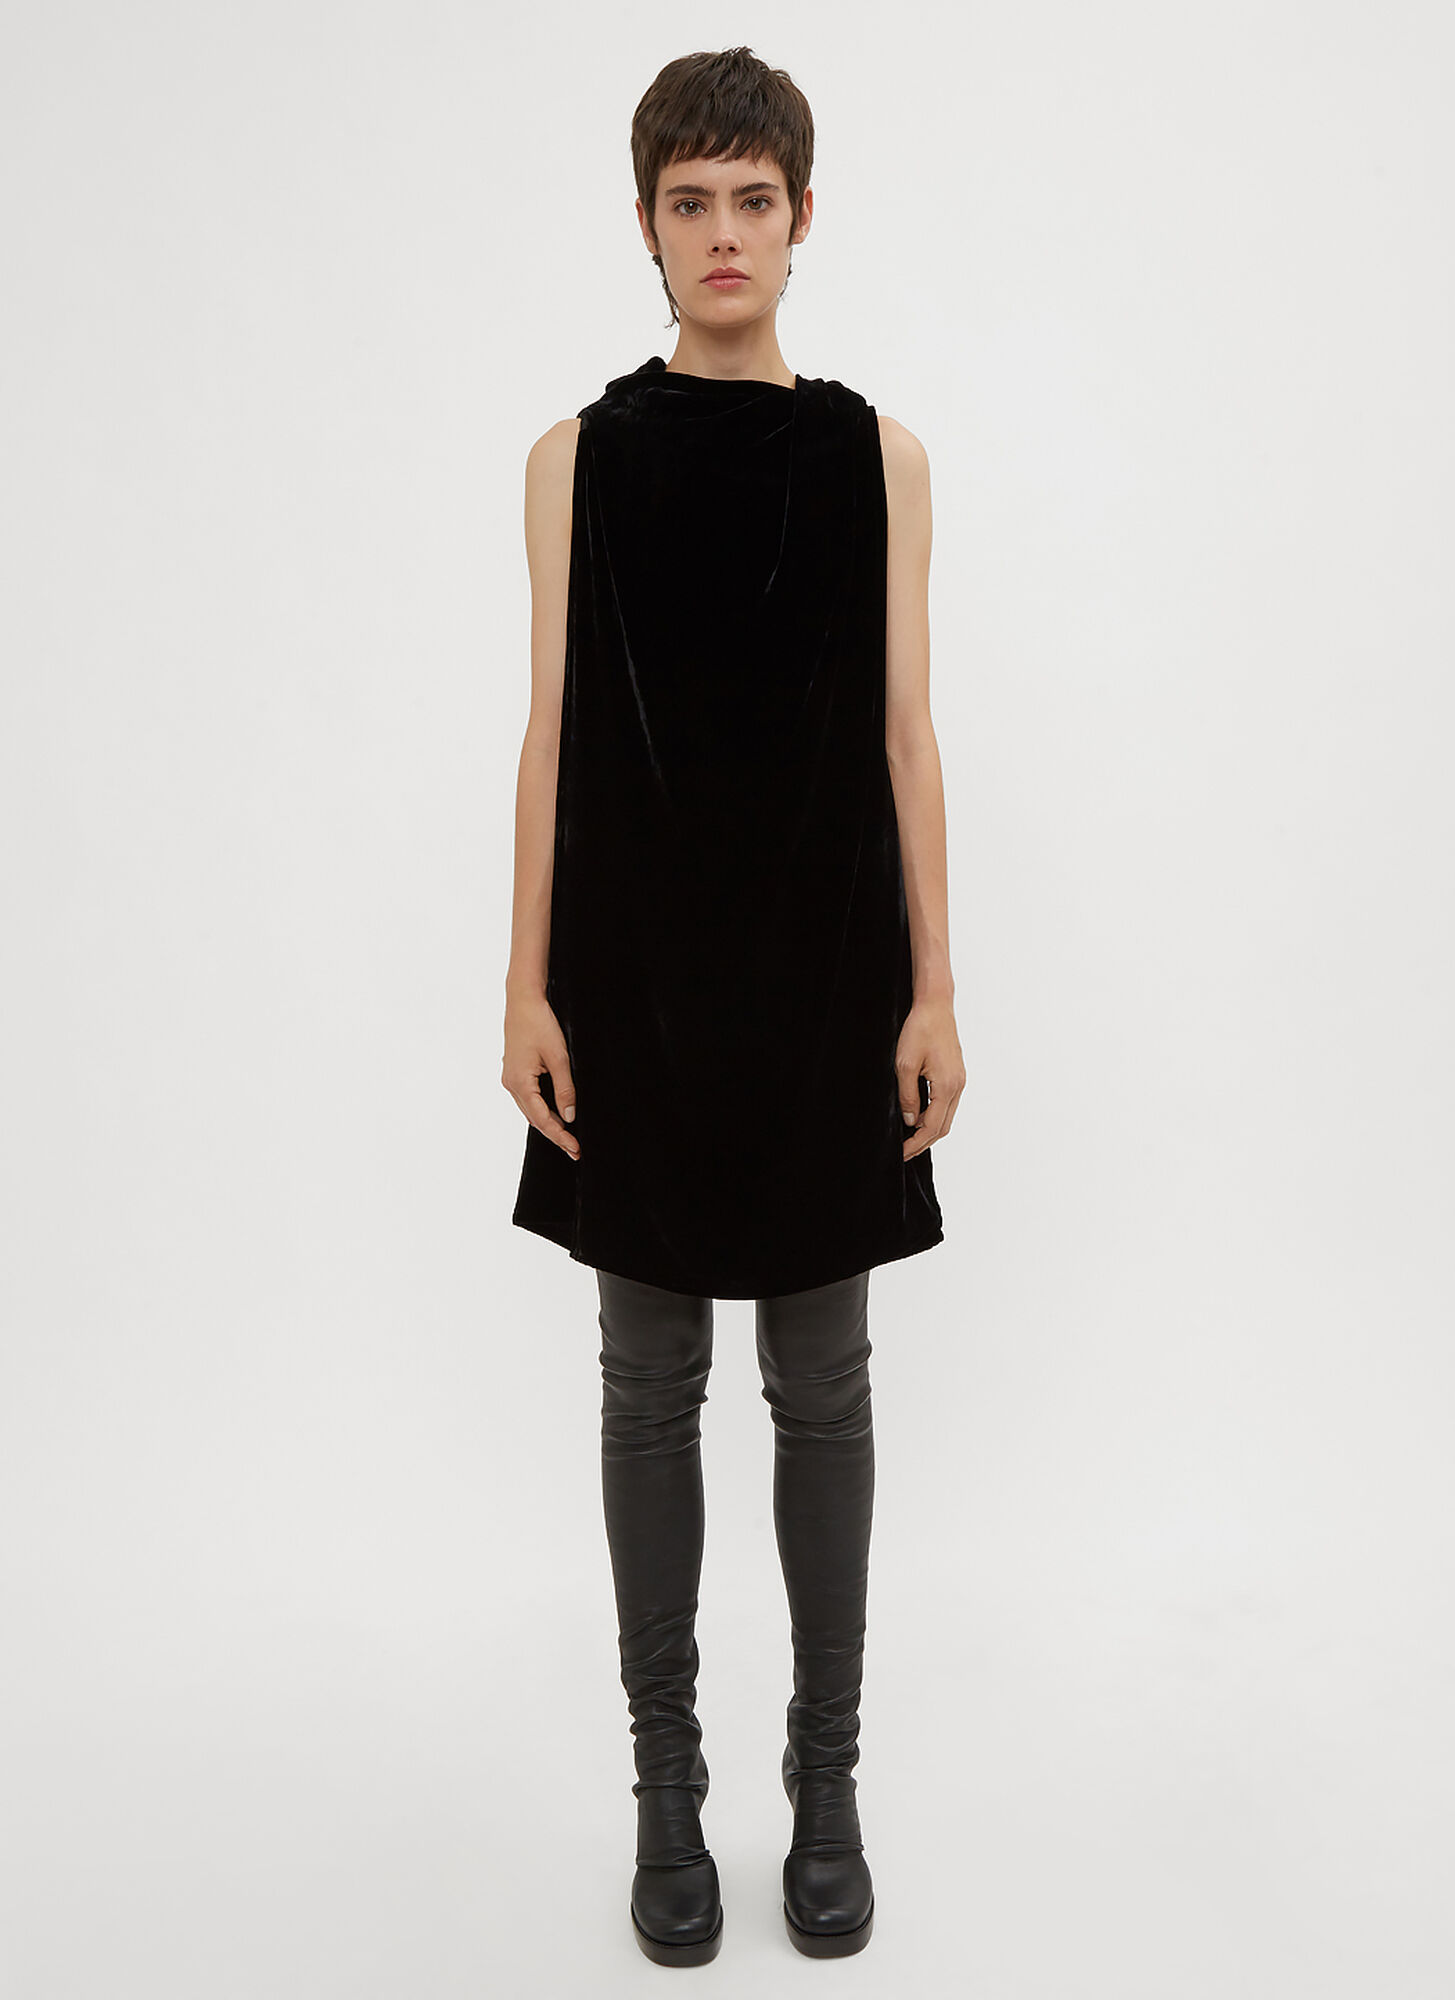 Photo of Rick Owens Toga Dress in Black - Rick Owens Dresses